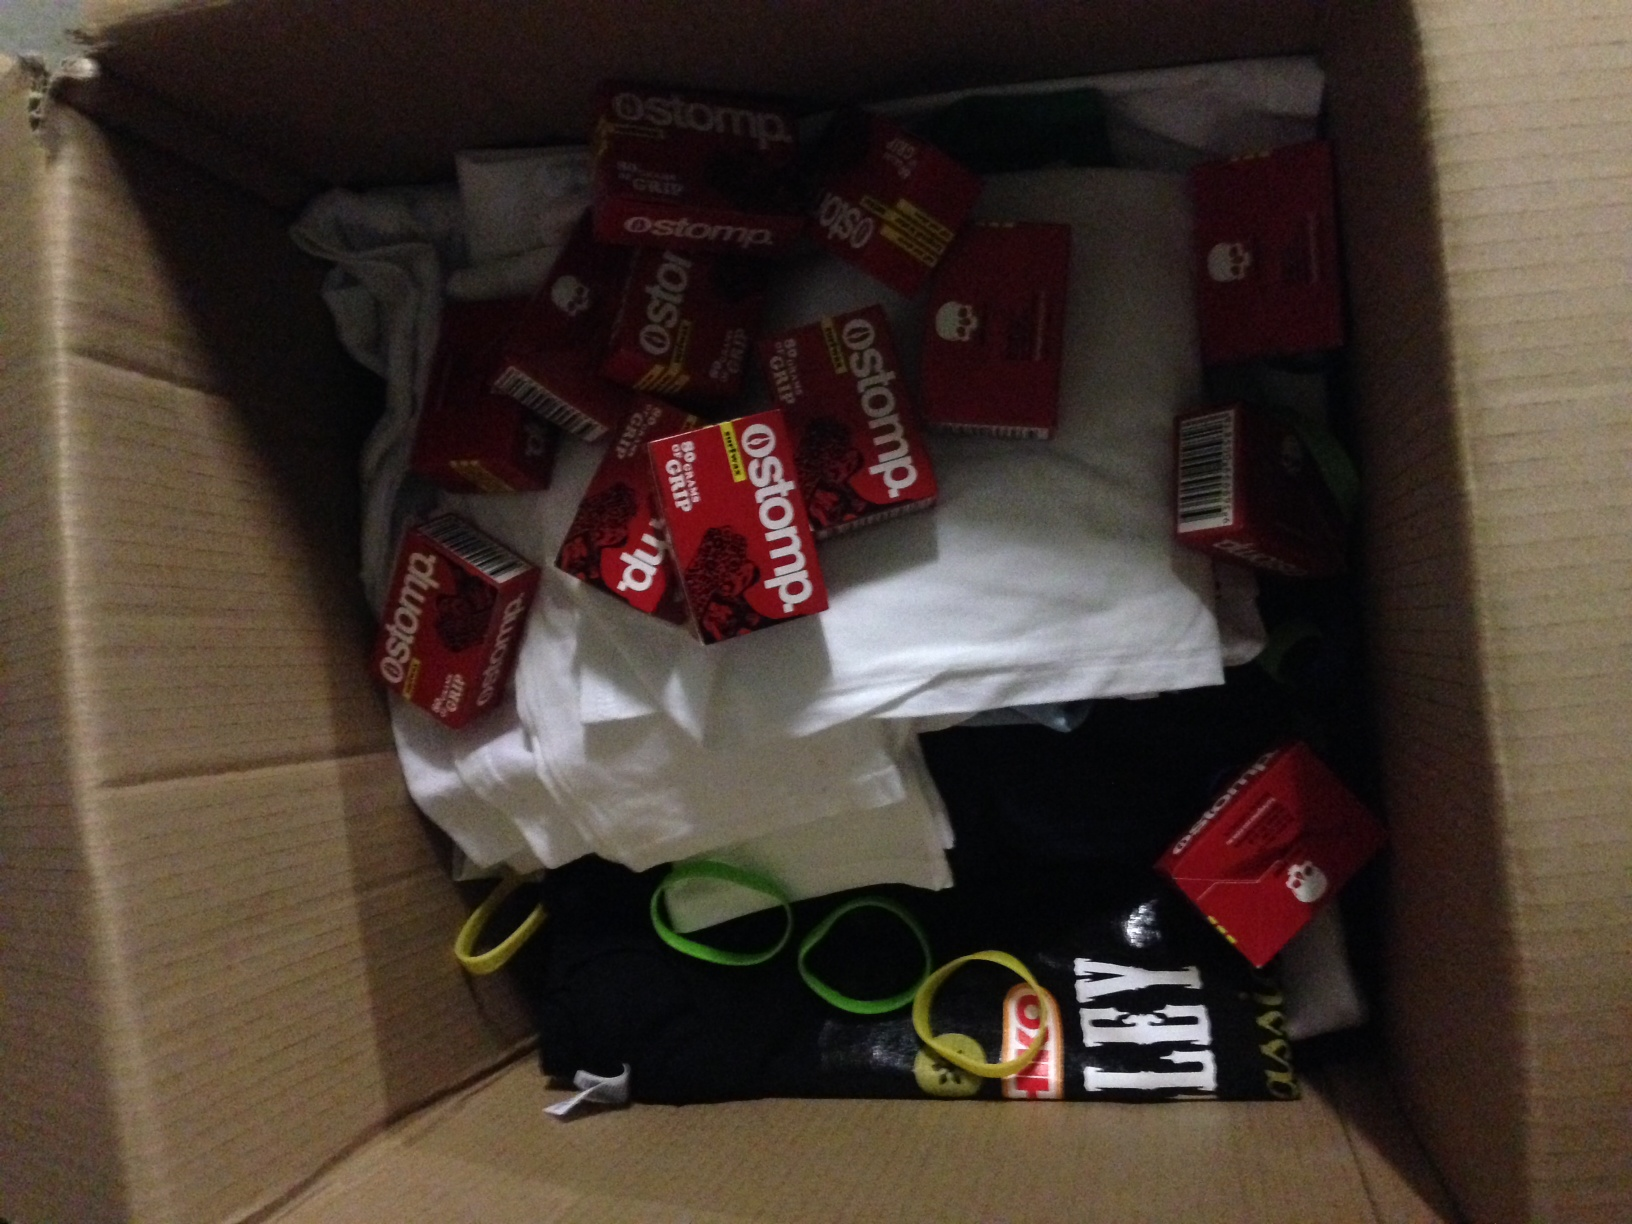 Tshirts, wax and others to India